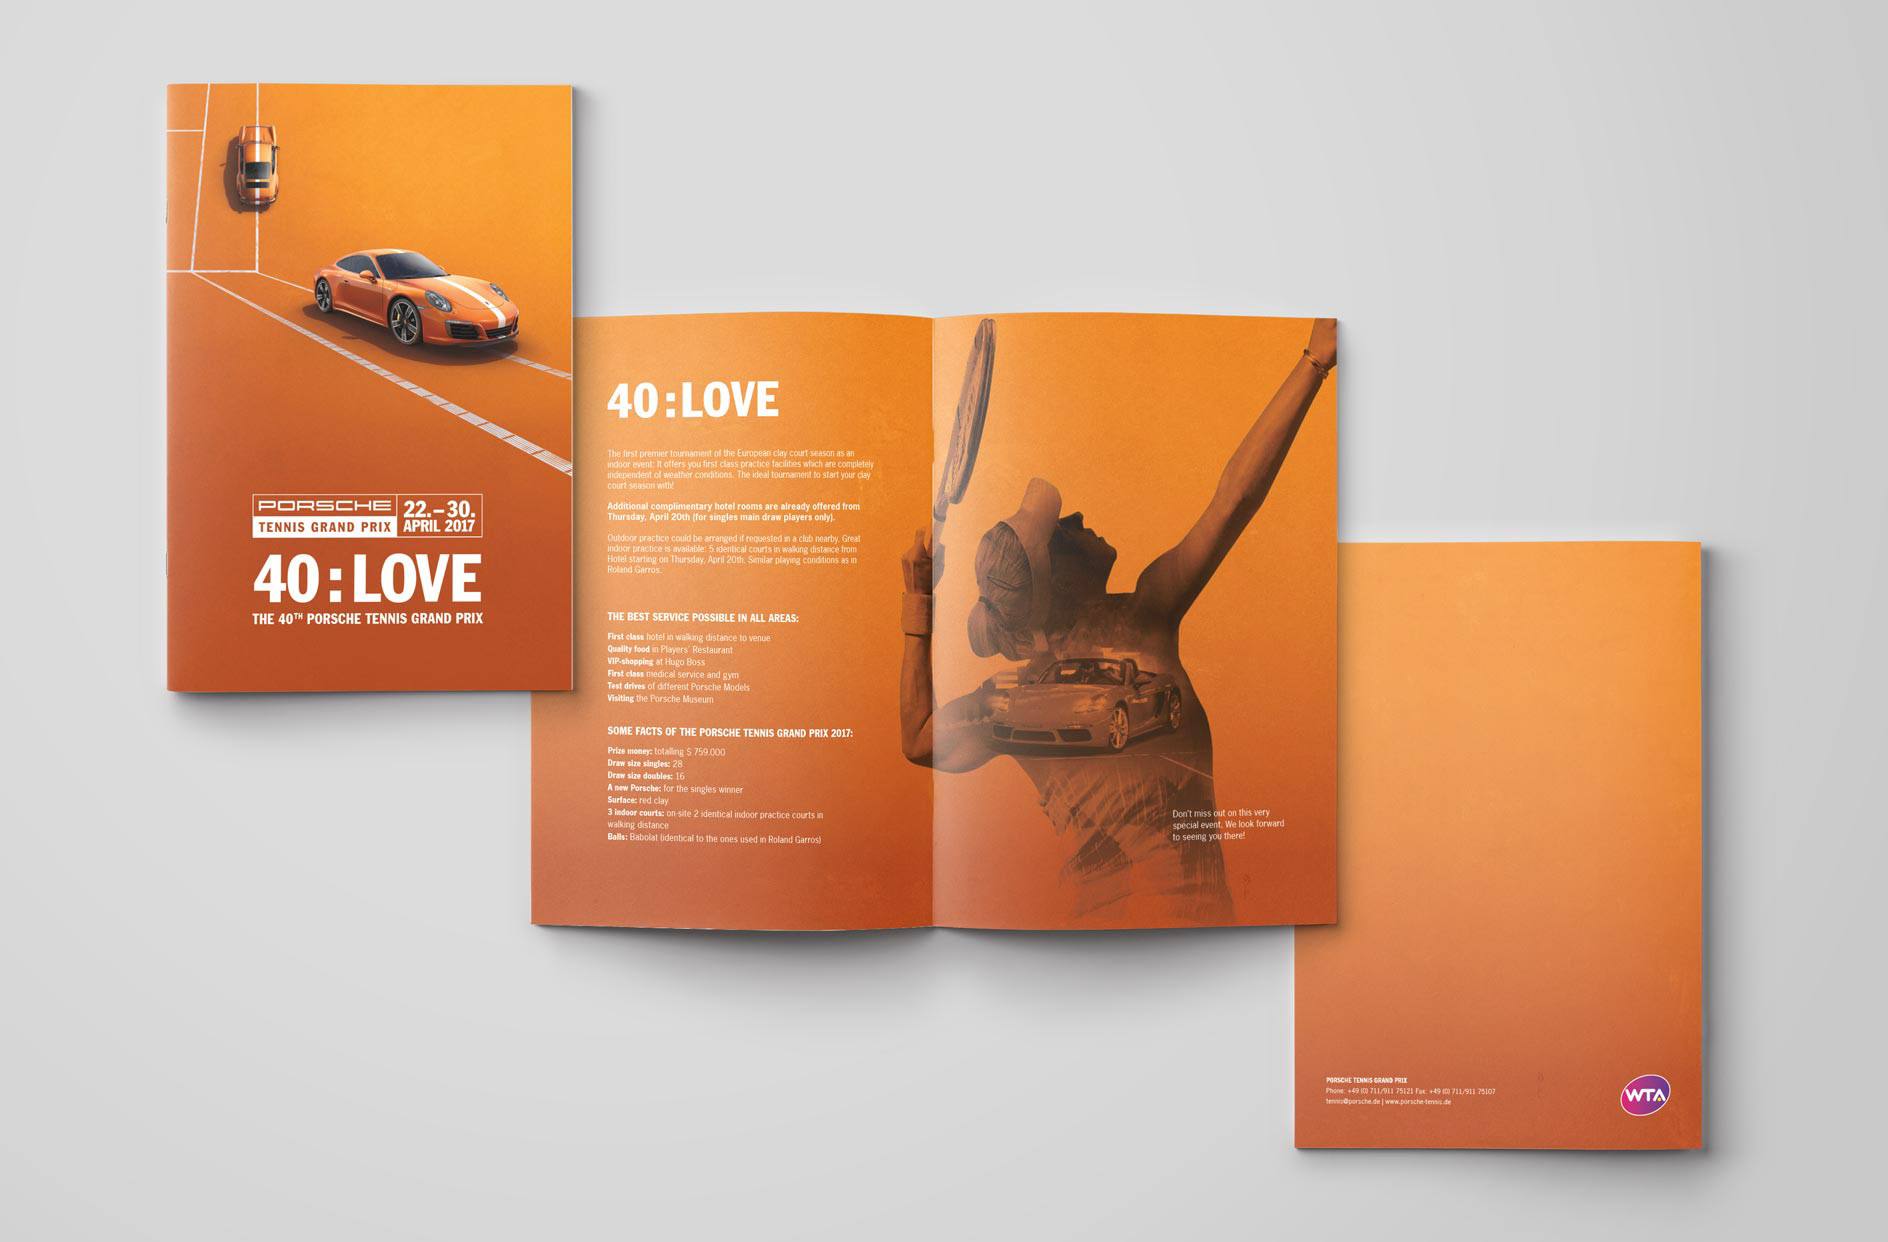 Prix Porsche Tennis Grand Prix Event Vermarktung On Behance